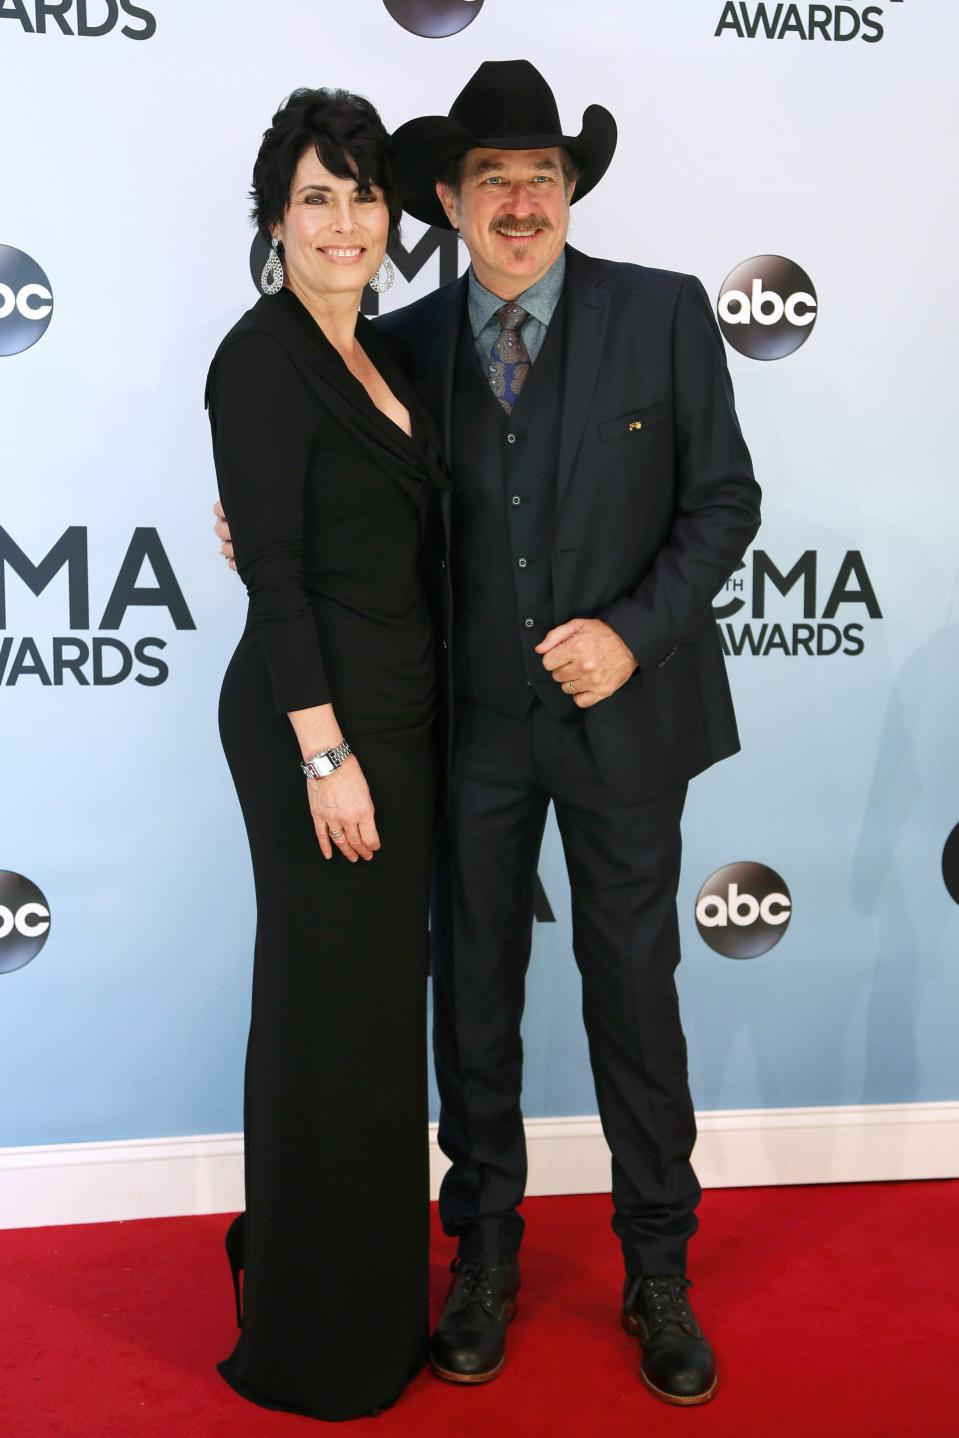 Kix Brooks and his wife Barbara pose on arrival at the 47th Country Music Association Awards in Nashville, Tennessee November 6, 2013. REUTERS/Eric Henderson (UNITED STATES - Tags: ENTERTAINMENT)